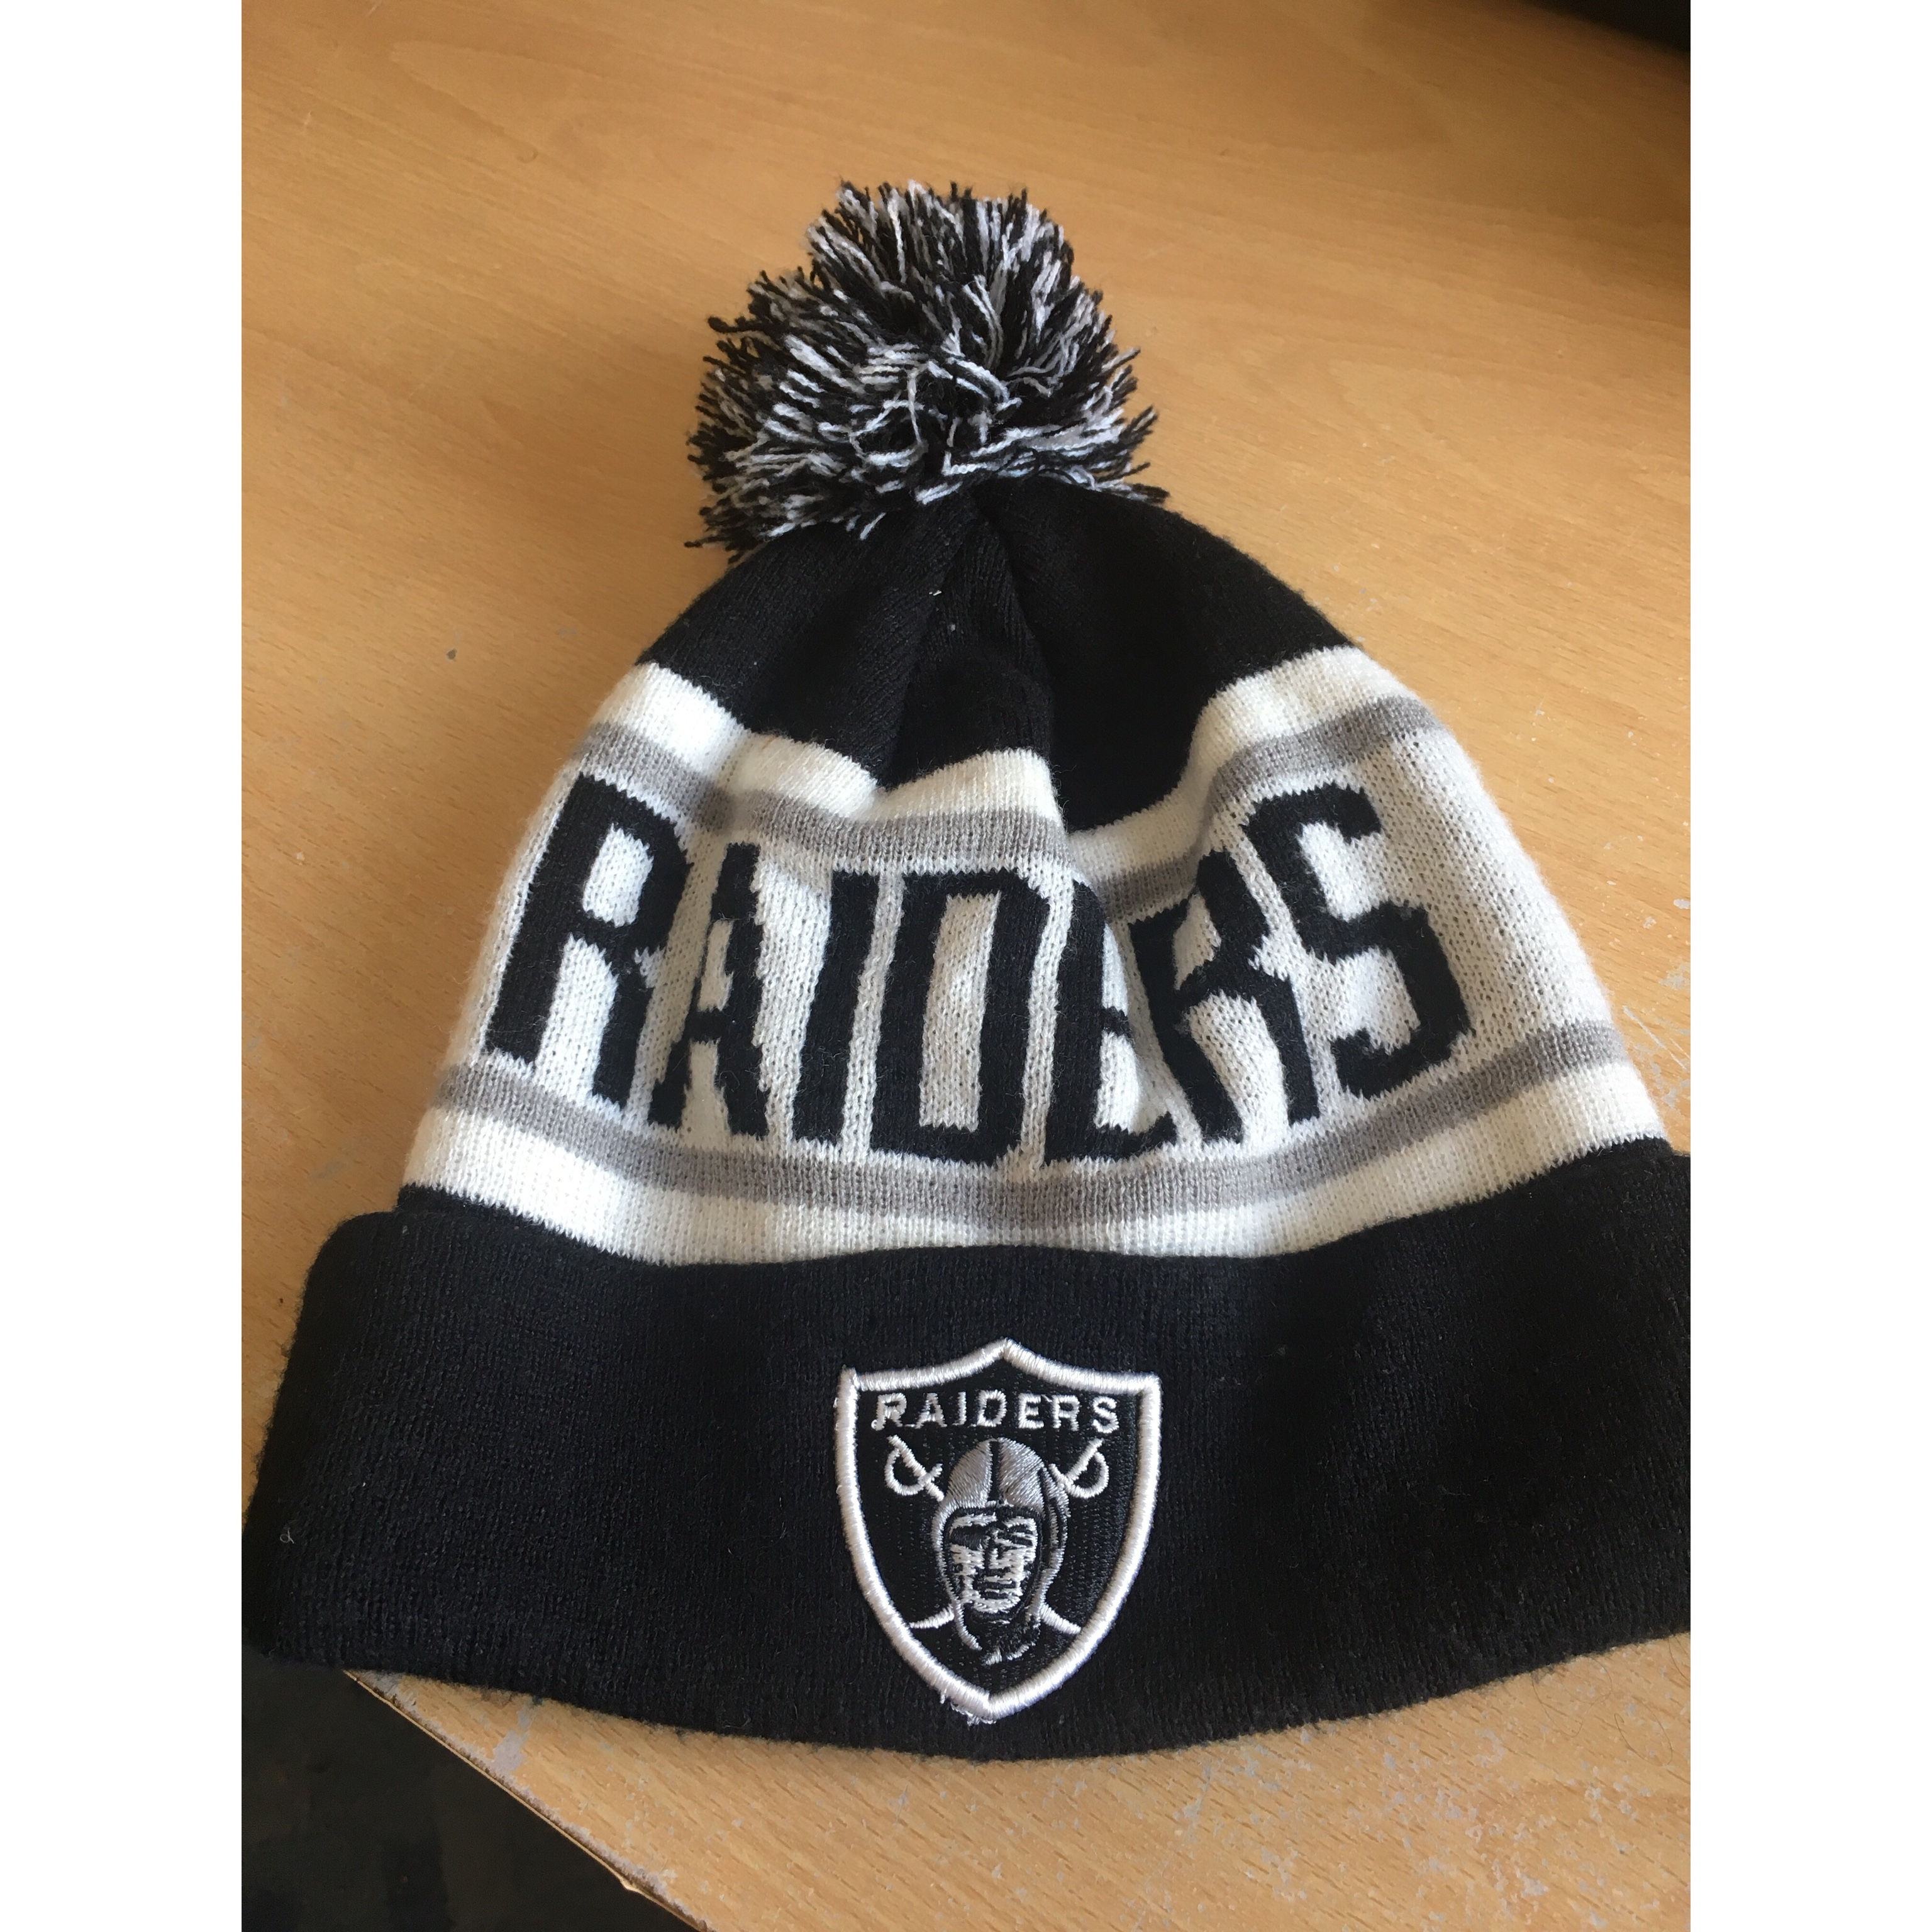 Oakland Raiders Beanie Hat Unofficial New Era Wooly Depop